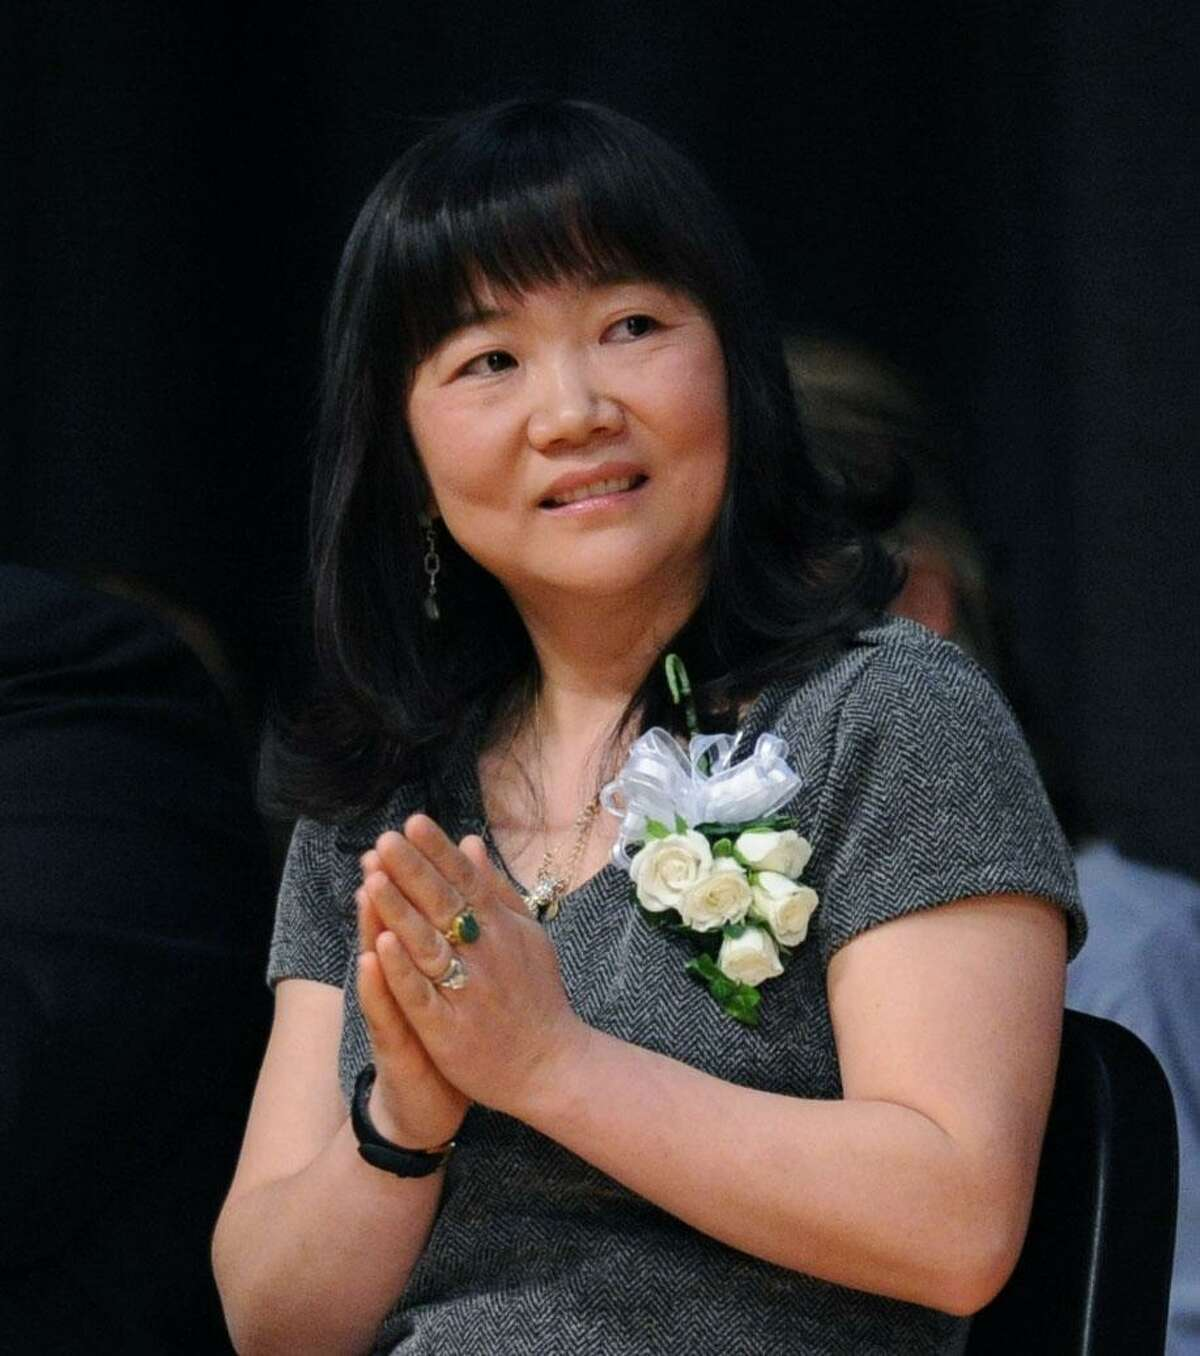 Greenwich Public Schools Distinguished Teachers award winner, Lin Yuan Young, a Greenwich High School Mandarin Chinese teacher, during the ceremony at Central Middle School in Greenwich, Tuesday, May, 6, 2014.